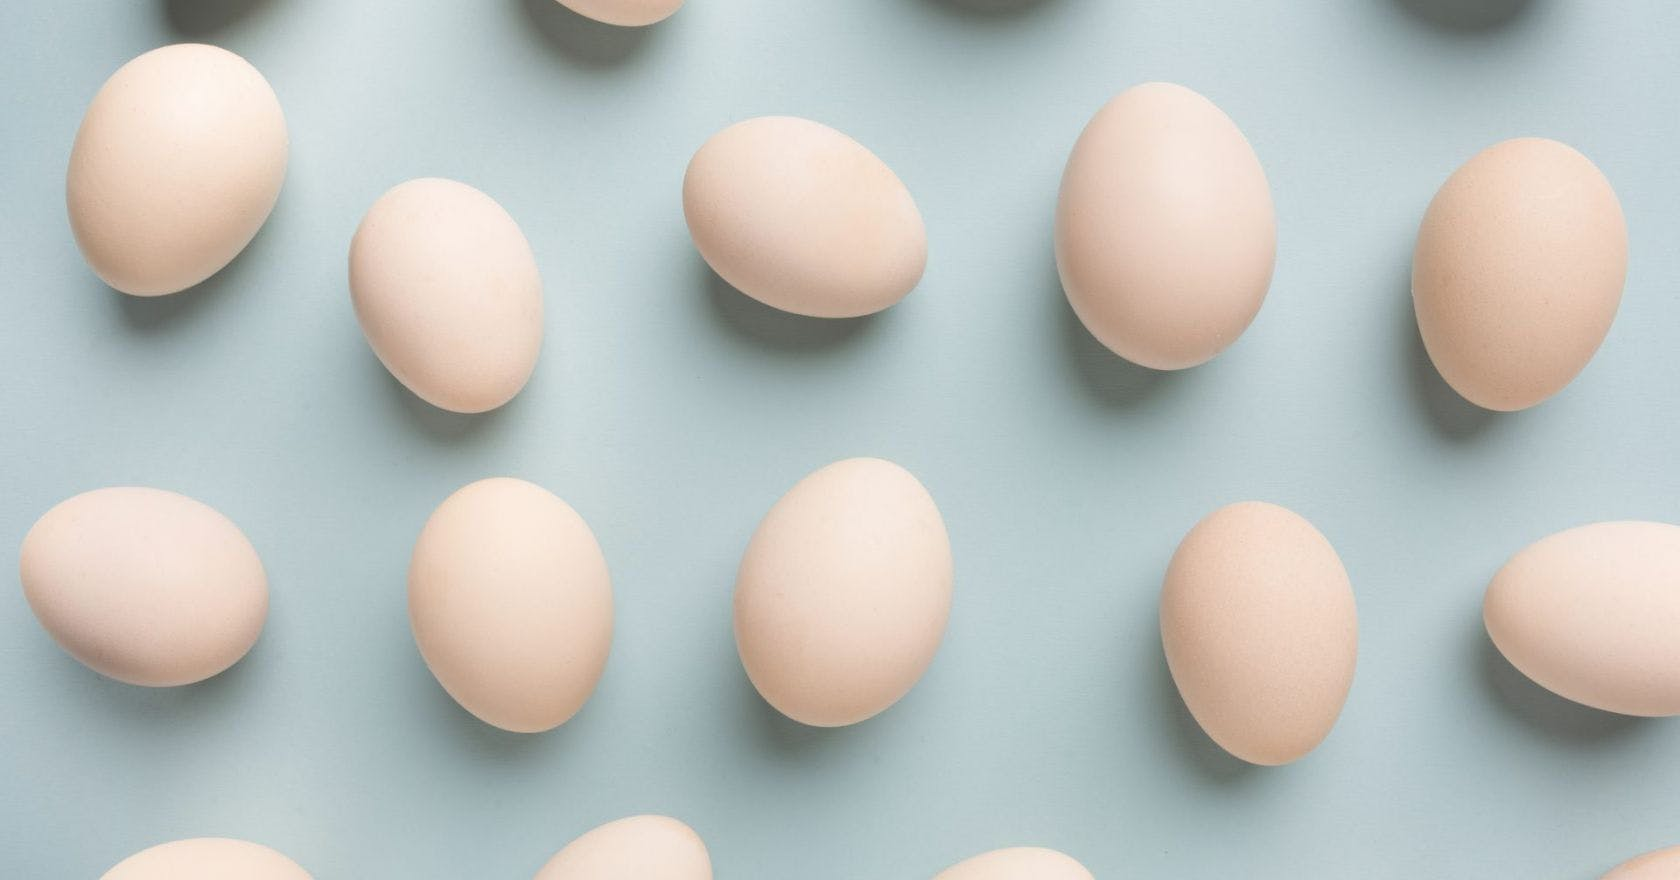 All your egg freezing questions are answered in this new podcast